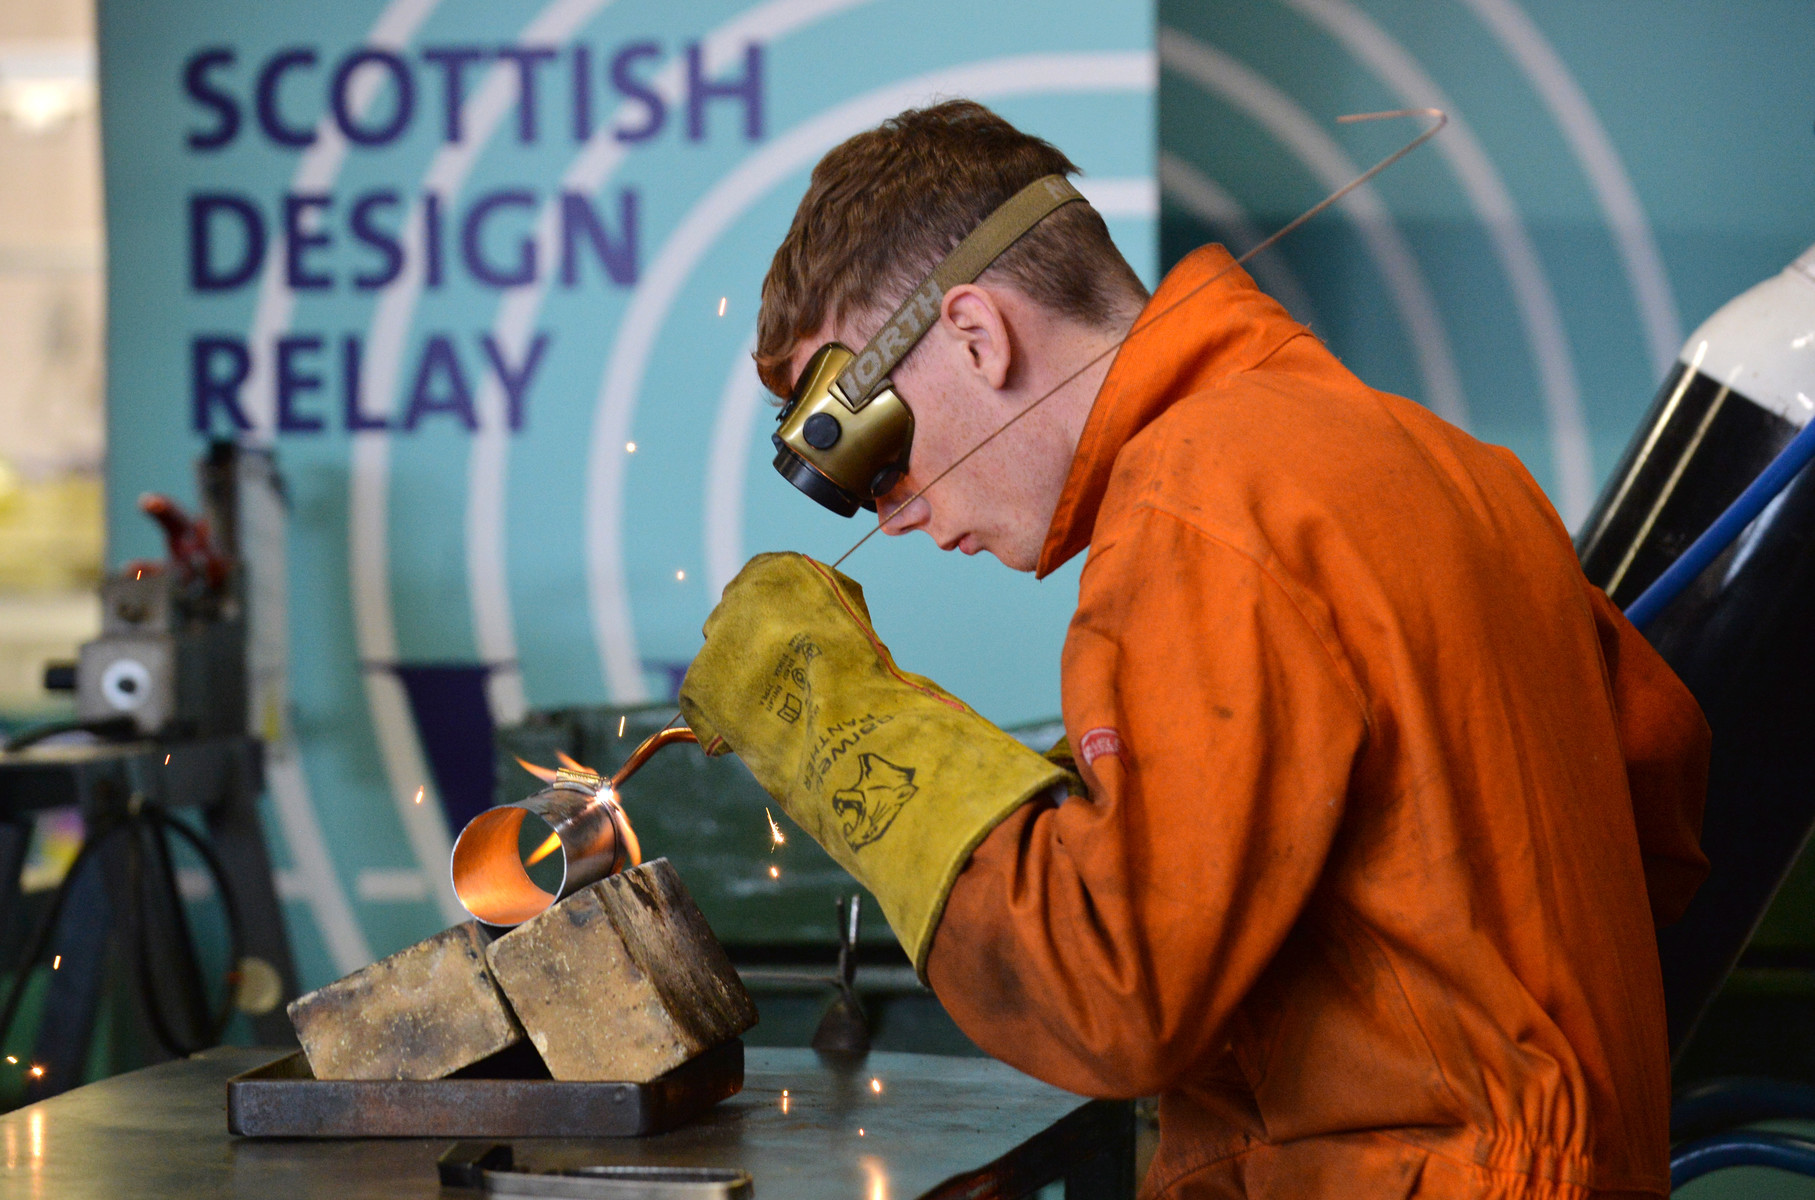 Michelin apprentice engineer Glenn Wheelans welds a piece of rolled metal plate to form part of the outer casing of the final prototype. Photo by Julie Howden